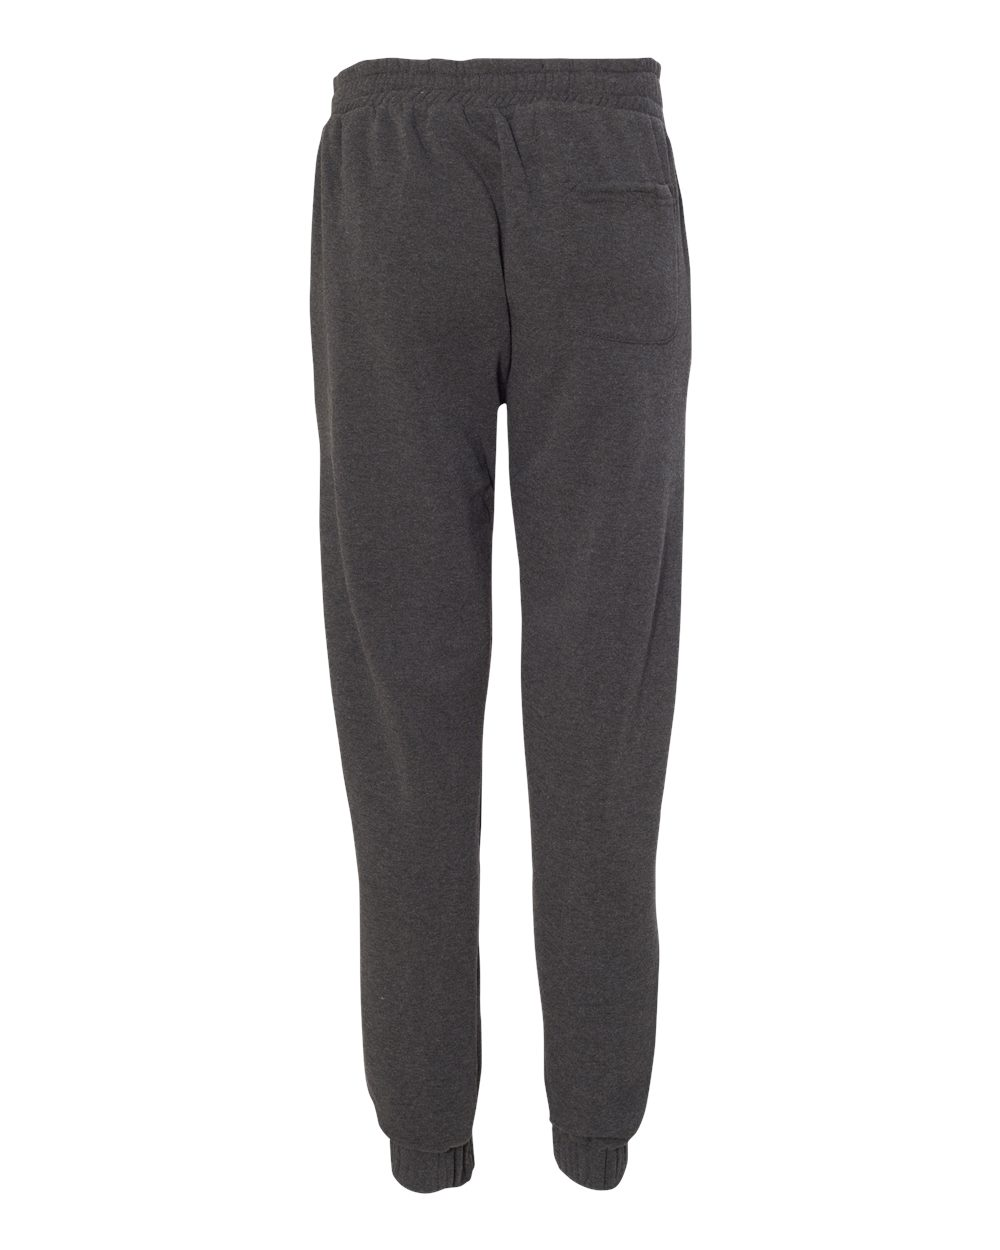 Burnside-Mens-Sweatpants-Fleece-Joggers-With-Pockets-8800-up-to-3XL thumbnail 10